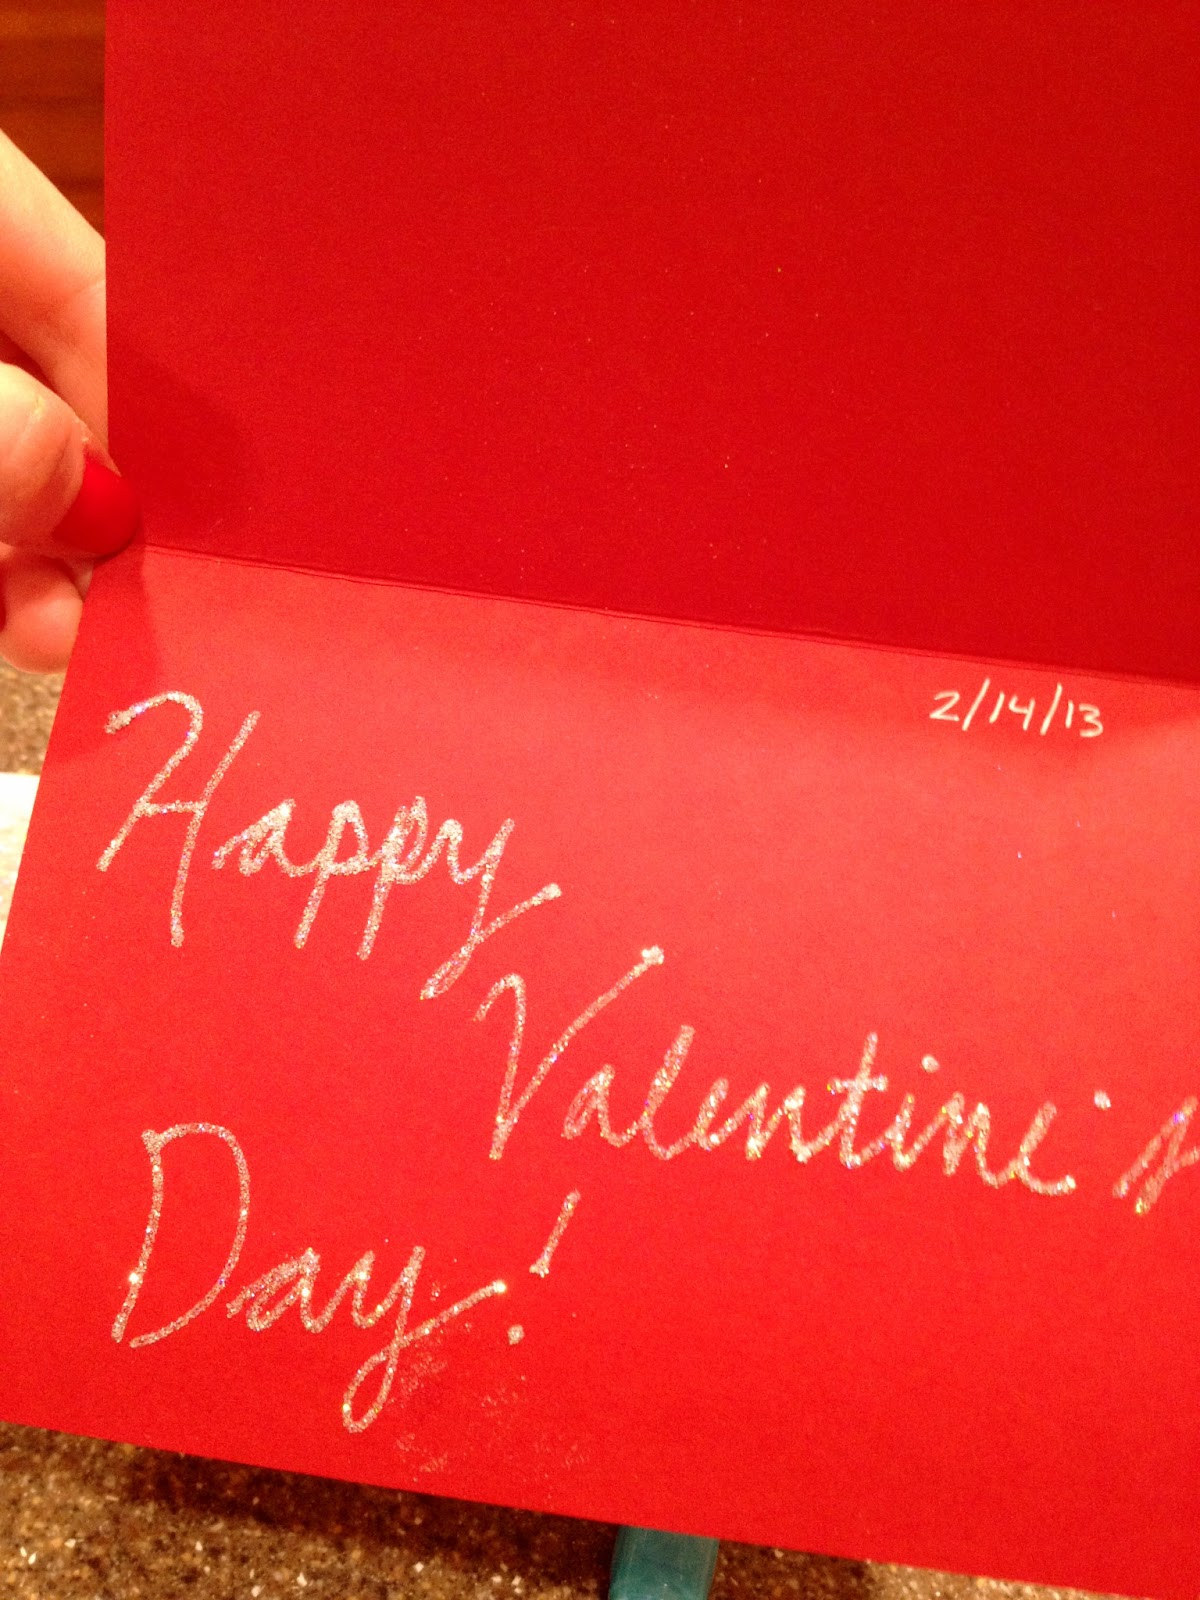 Then I Discovered The Glue Pen Recently And Used It To Write A Fancy Happy Valentineu0027s  Day Inside The Card With Sparkly Silver Glitter.